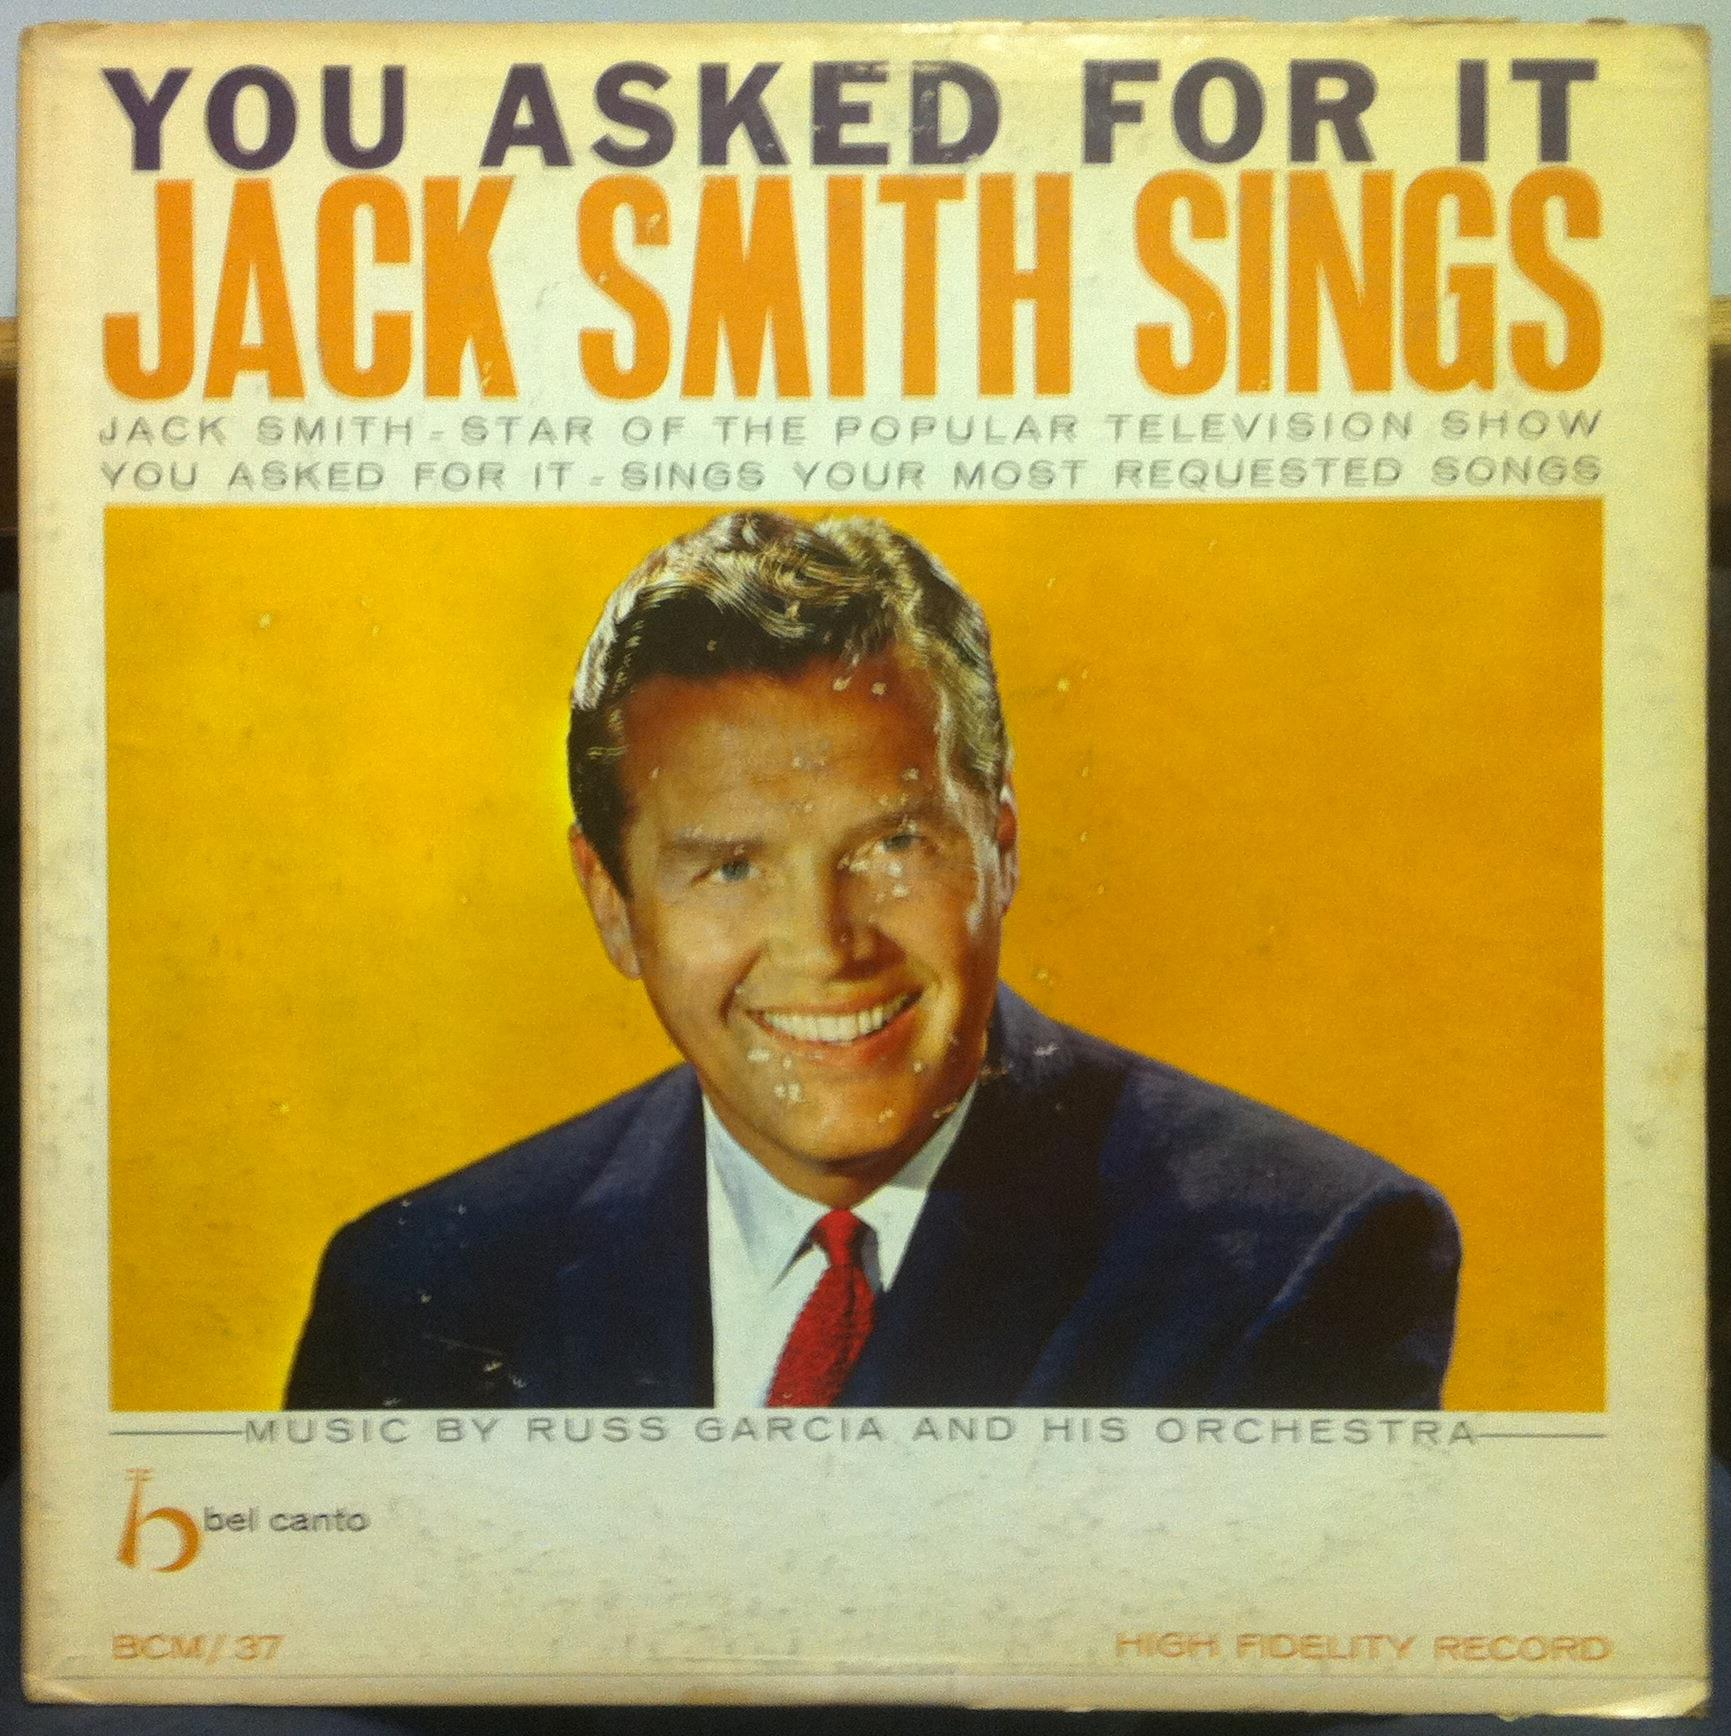 JACK SMITH - Sings You Asked For It